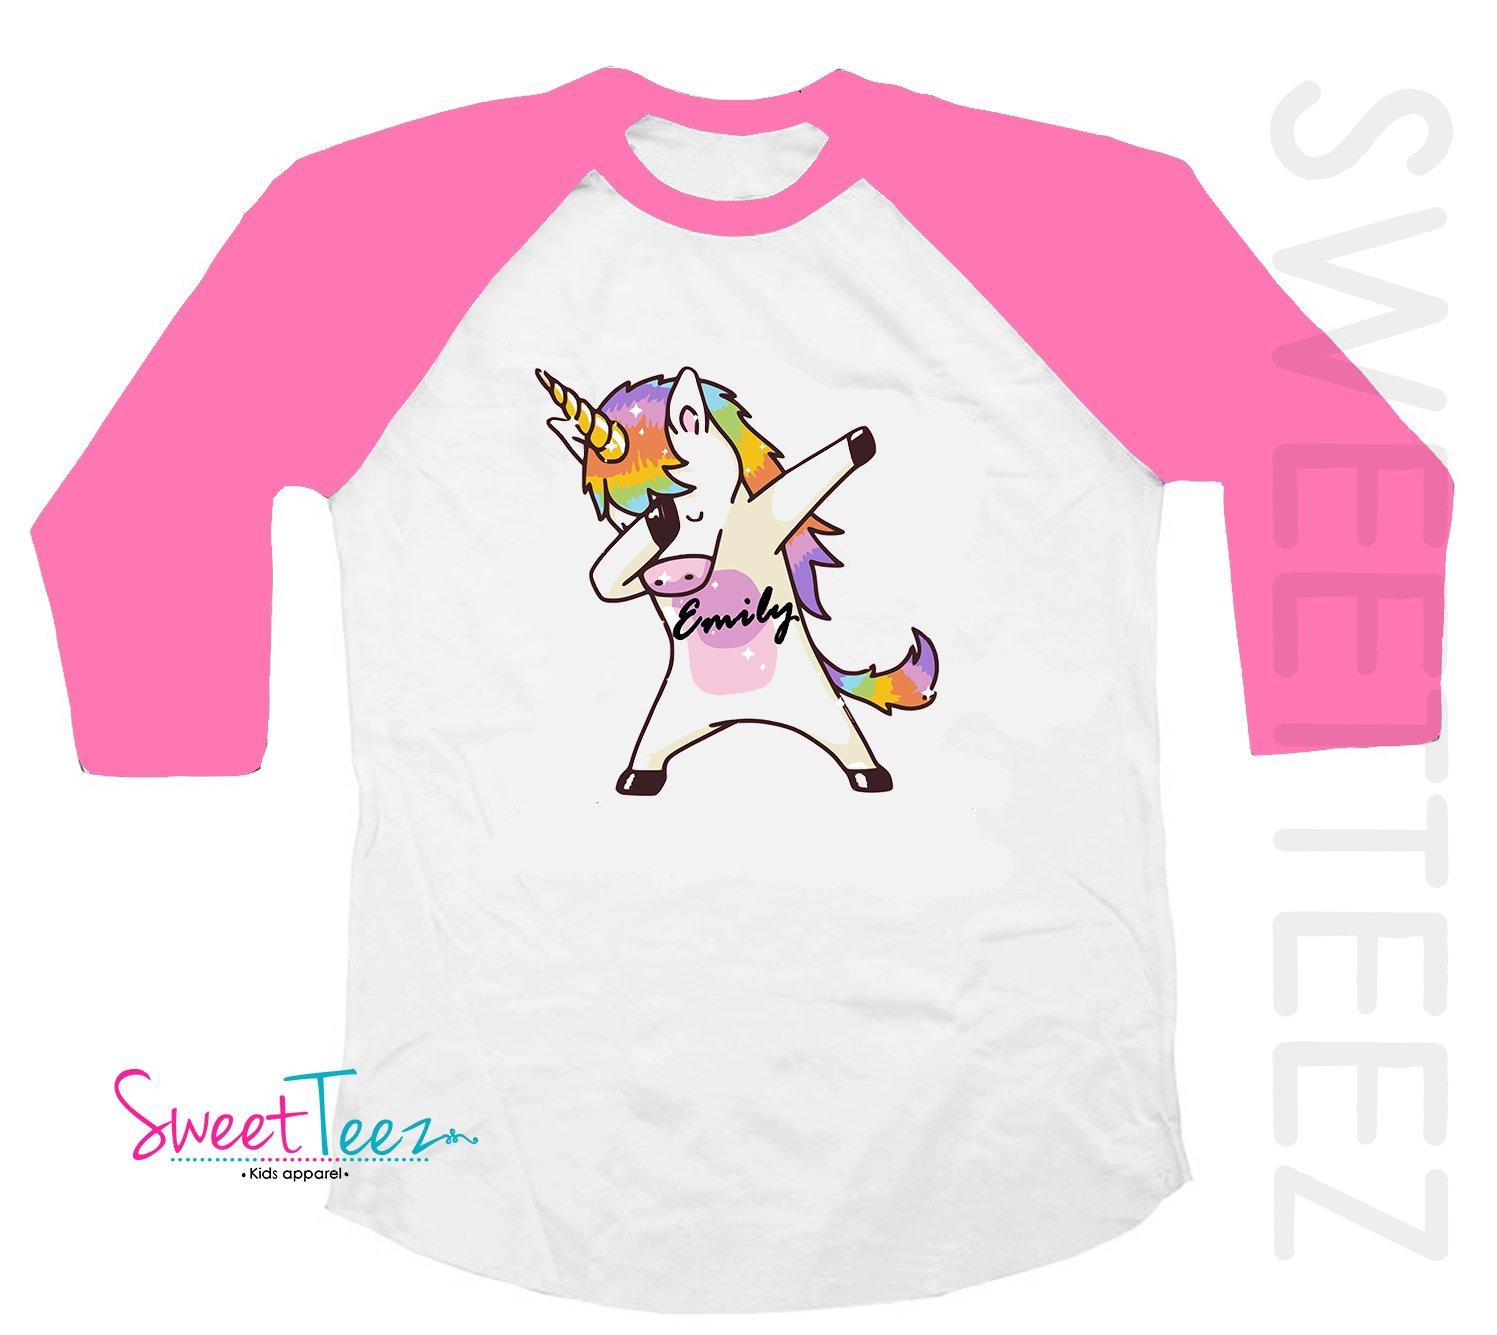 THE UNICORN/'S MADE ME DO IT GIRLS BOYS PERSONALISED KIDS T SHIRT GREAT GIFT IDEA